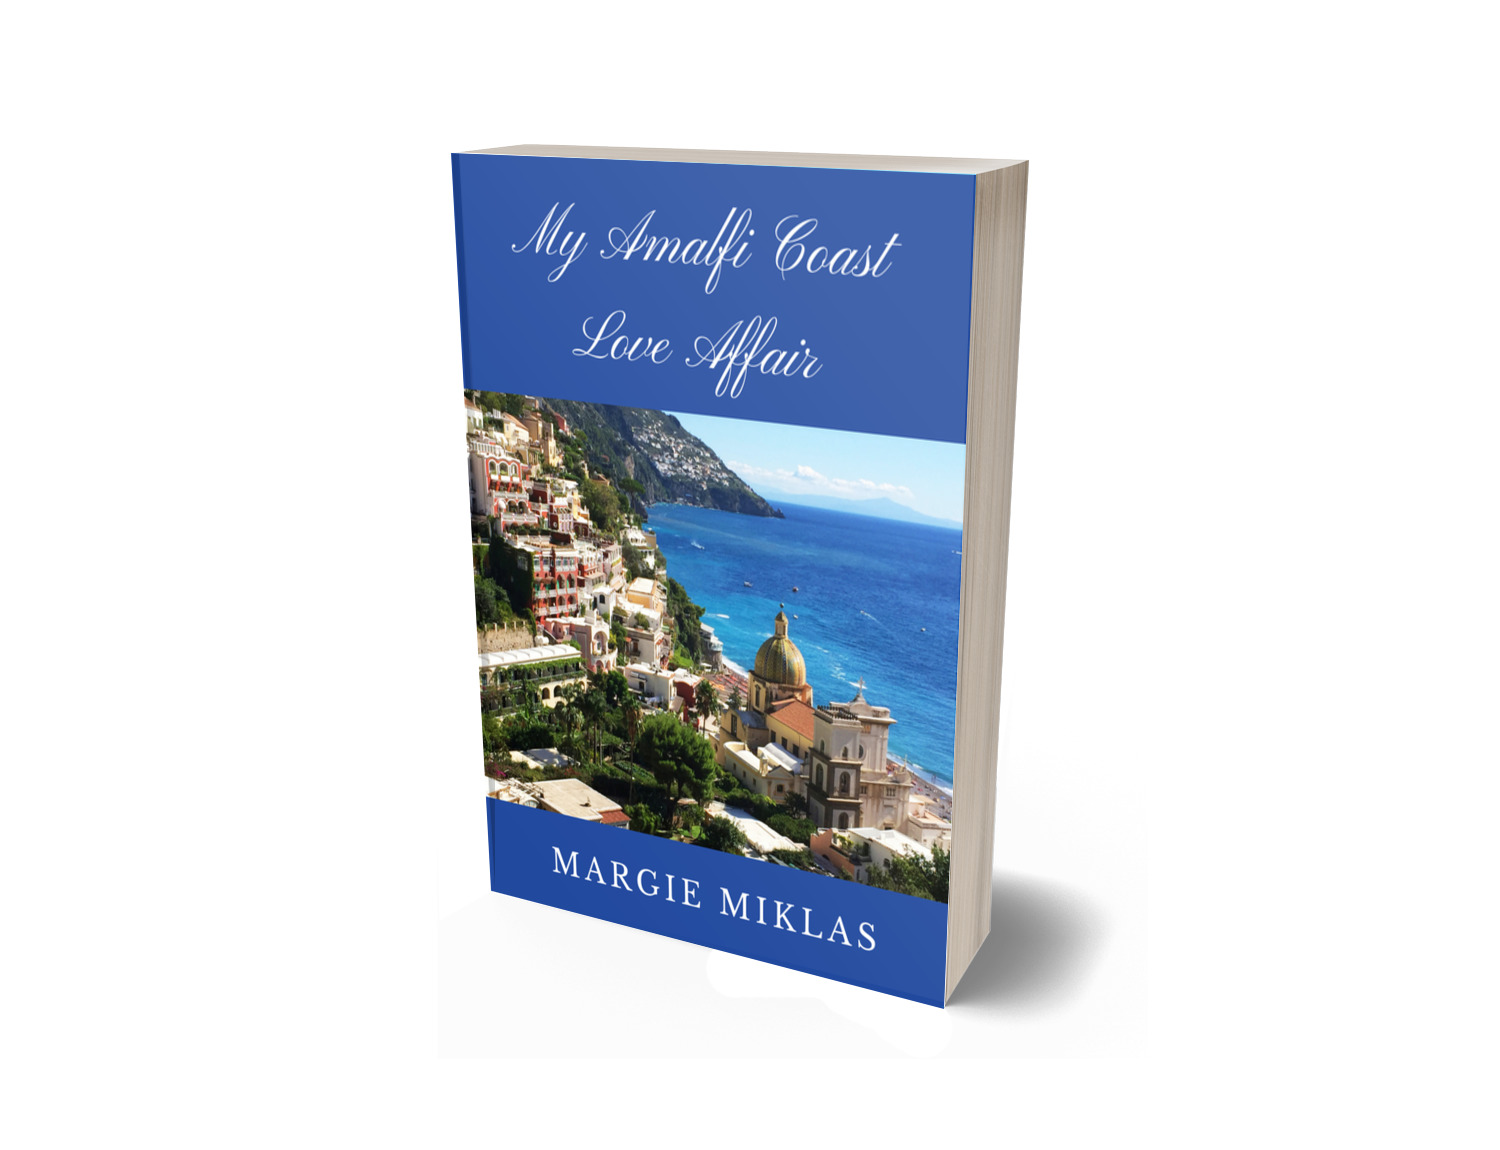 New Amalfi Coast Book Coming Soon